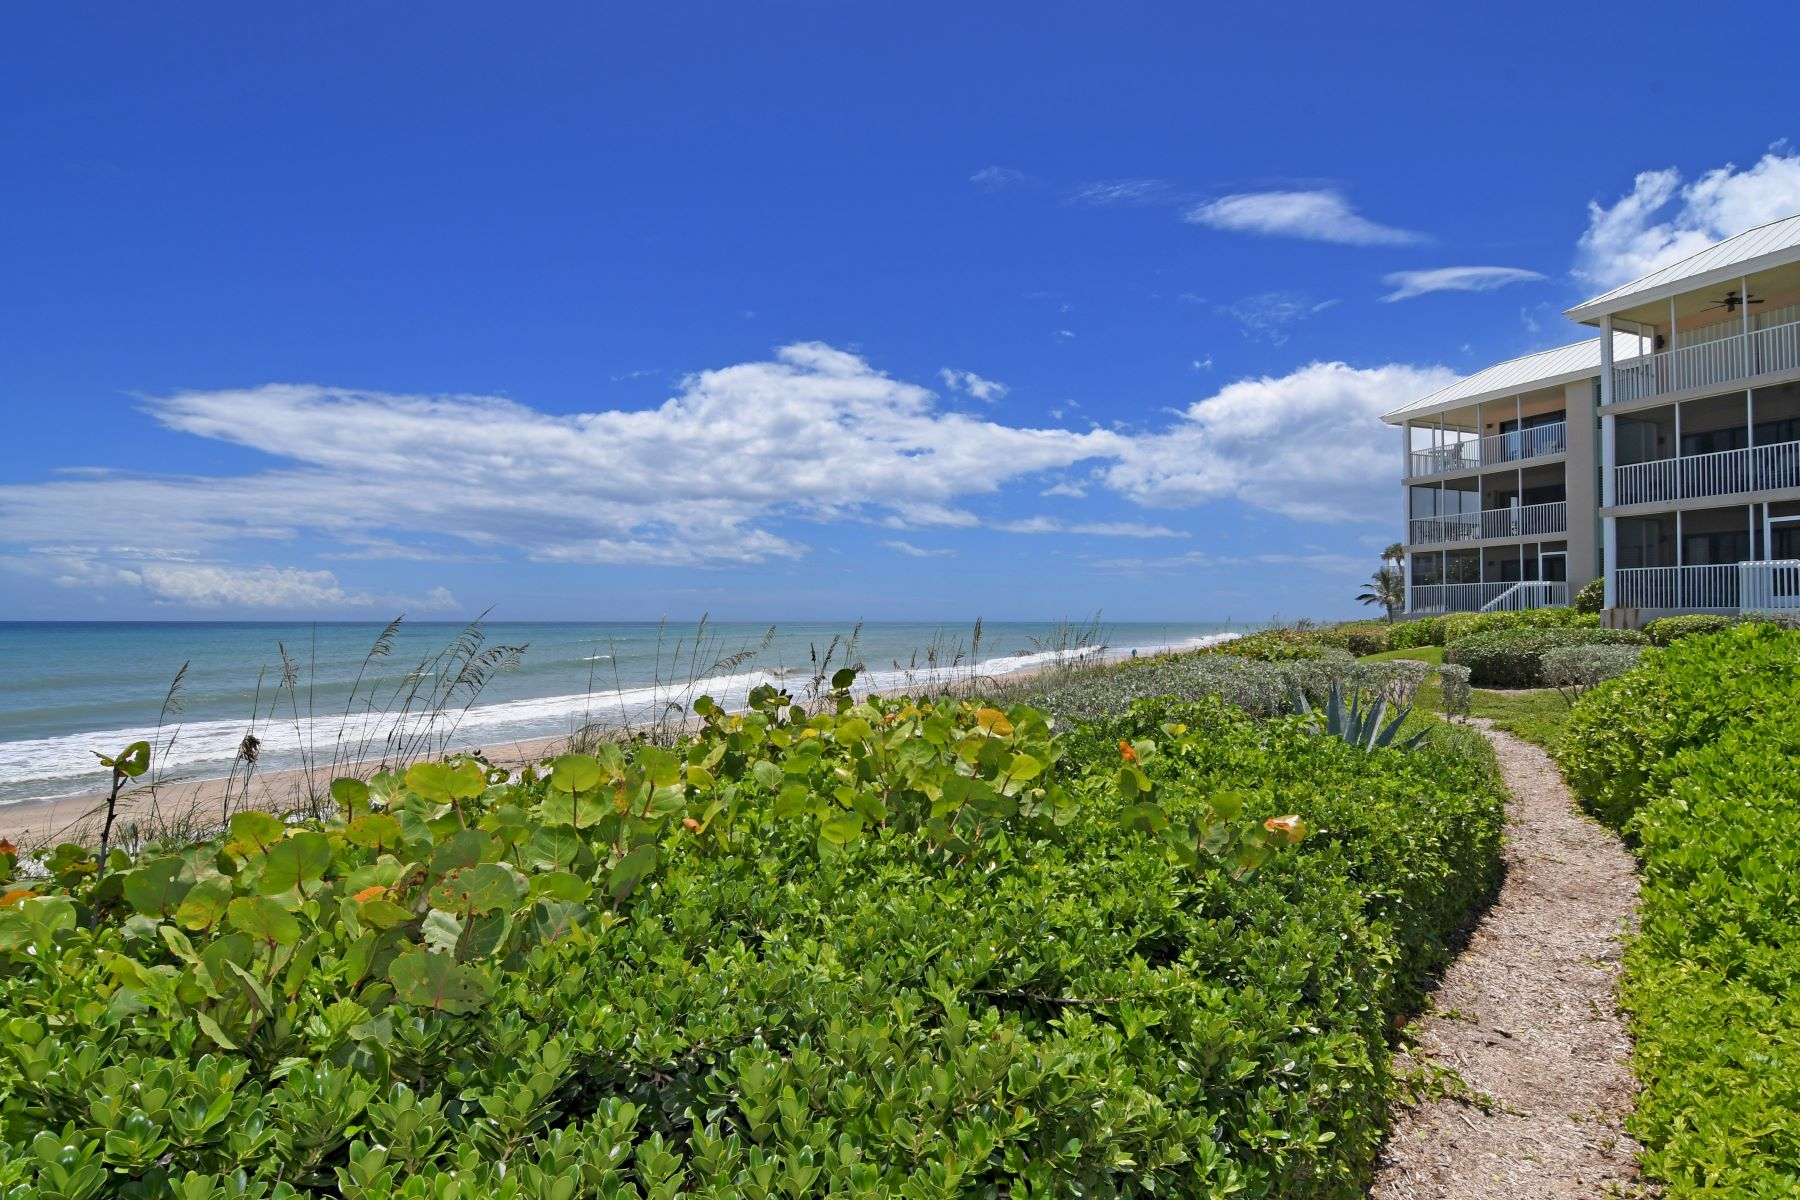 for Rent at 8840 S Sea Oaks Way 101C Vero Beach, Florida 32963 United States